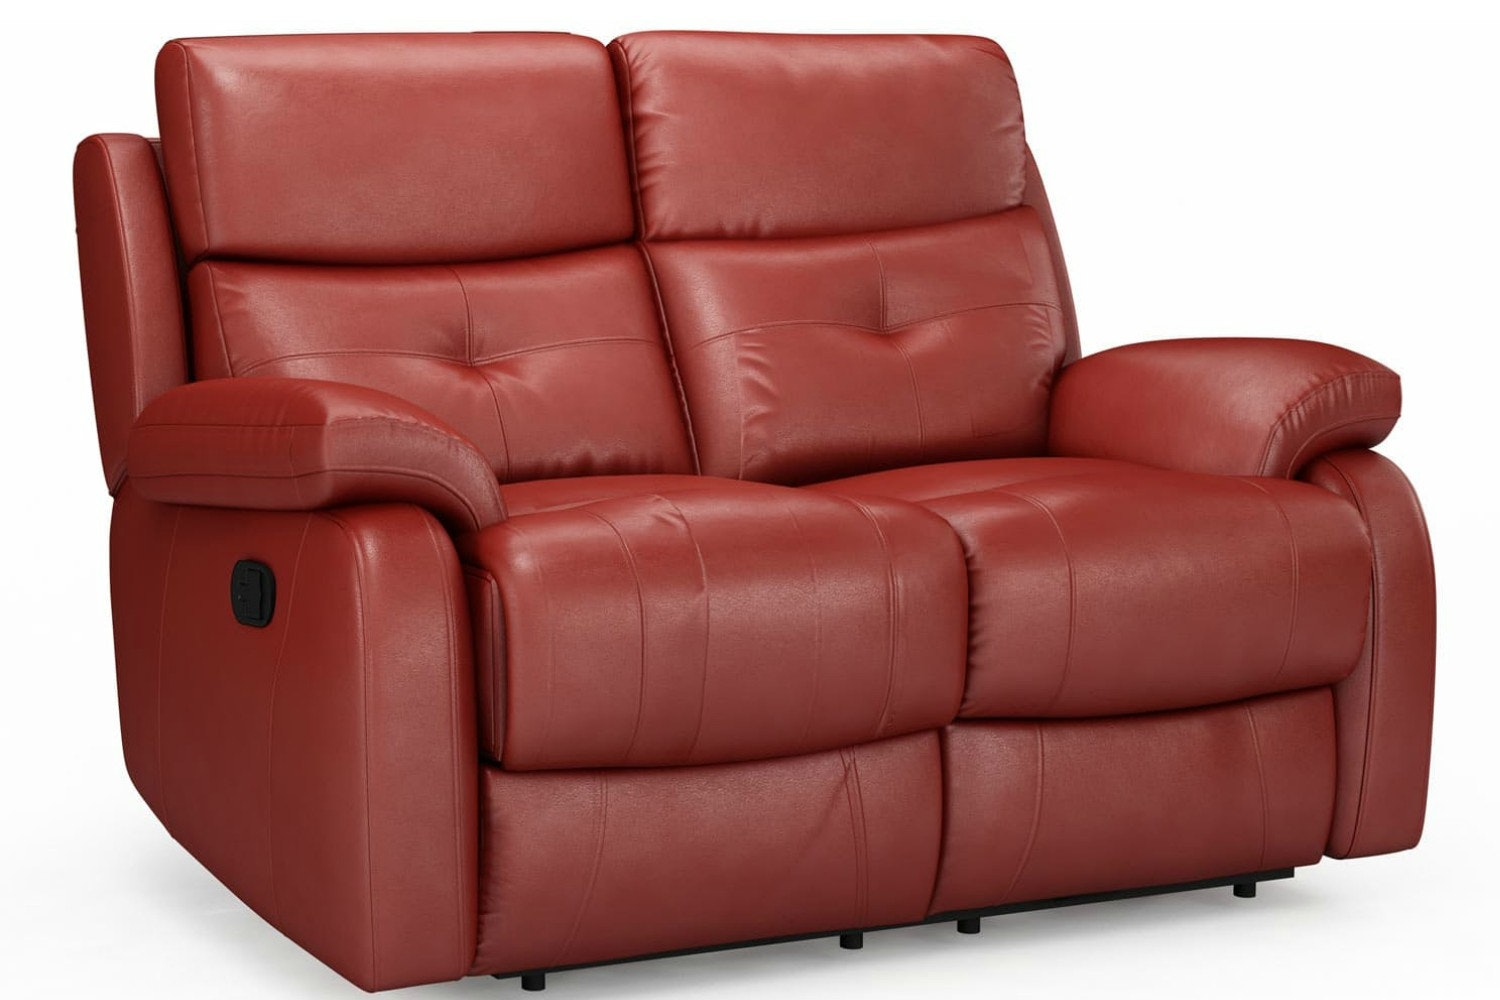 Mino 2 Seater Leather Recliner Sofa